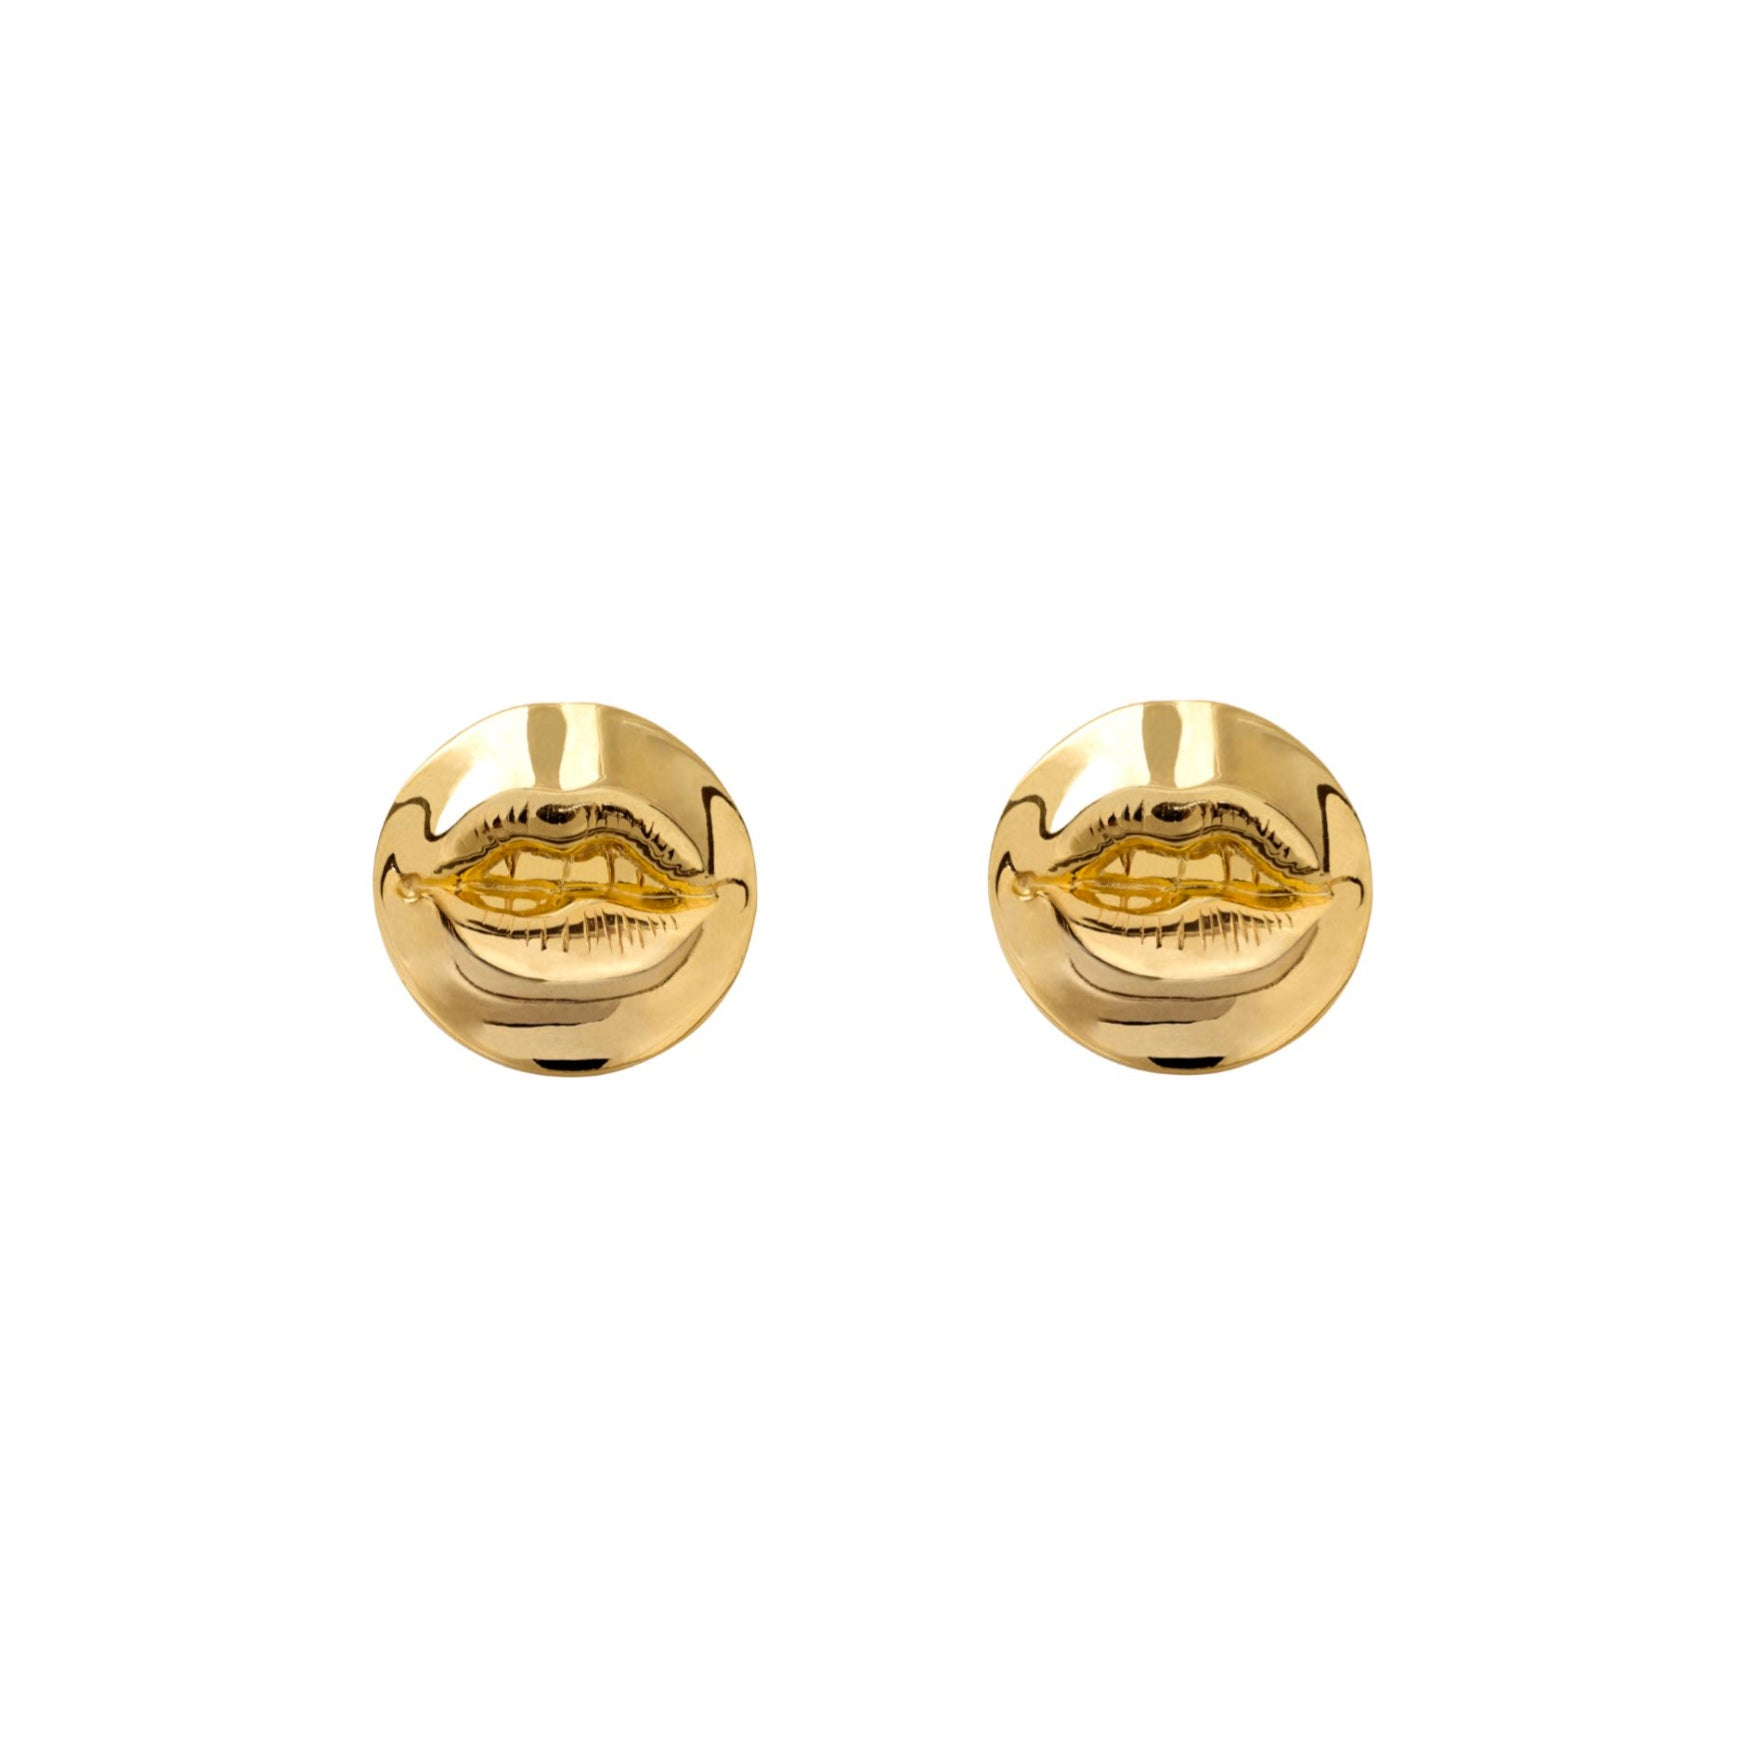 PAOLA VILAS - GODARD EARRINGS